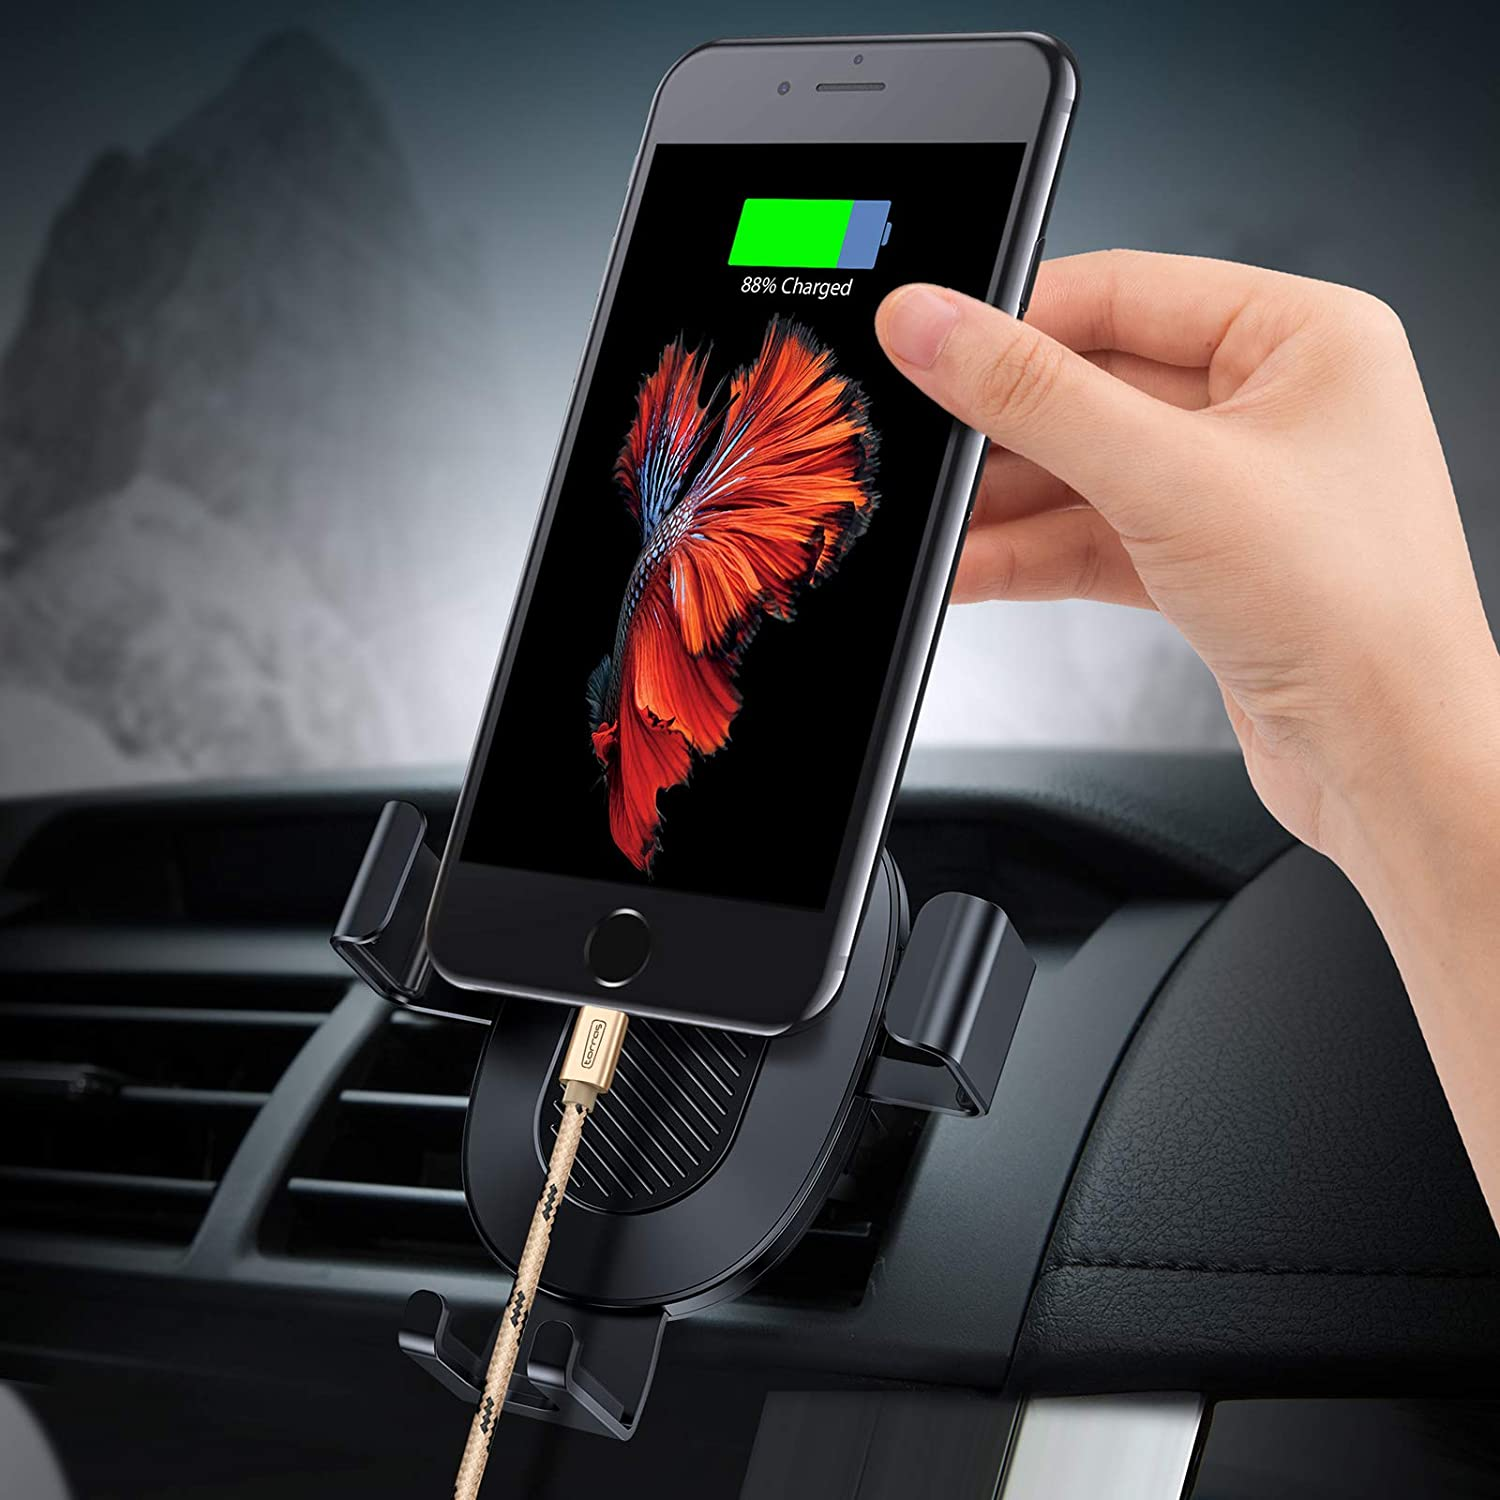 Torras Cell Phone Holder For Car Auto Clamping Air Vent Automotive Outlet Sucker Mount Cradle Compatible Iphone Xs Max Xr X 8 Plus 7